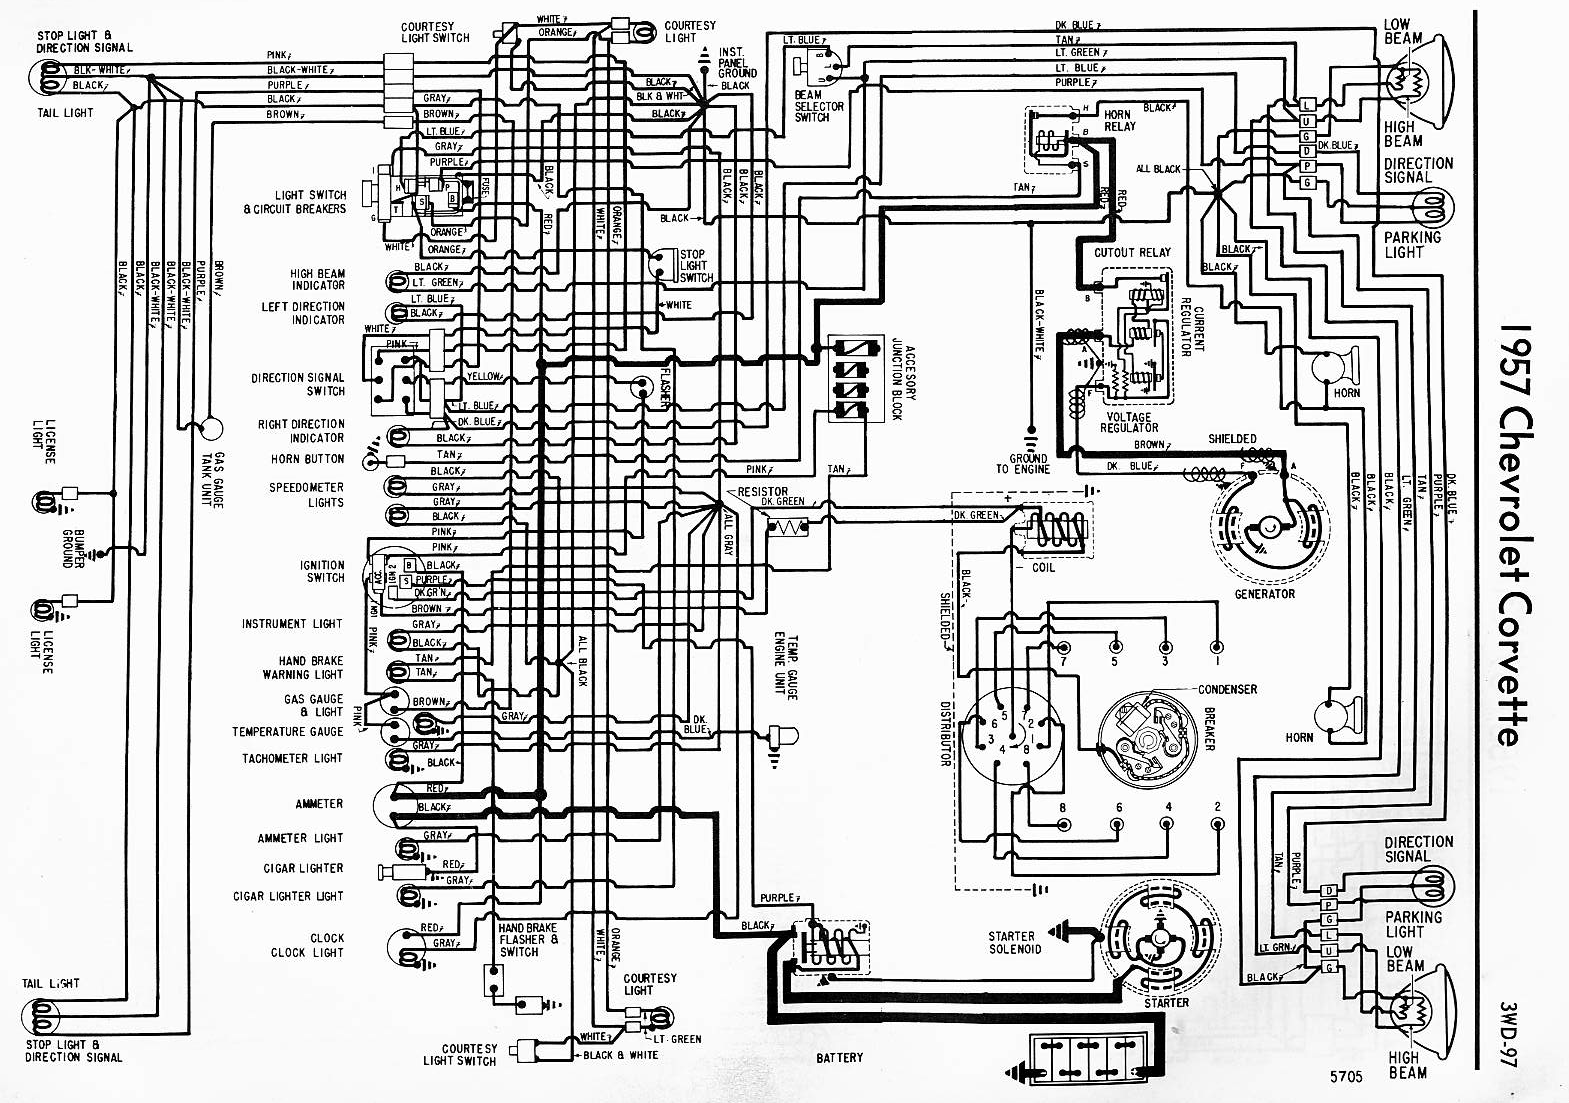 57 corvettte tracer schematic best one wiring diagram for ammeter 1966 corvette readingrat net 75 corvette wiring diagram at fashall.co